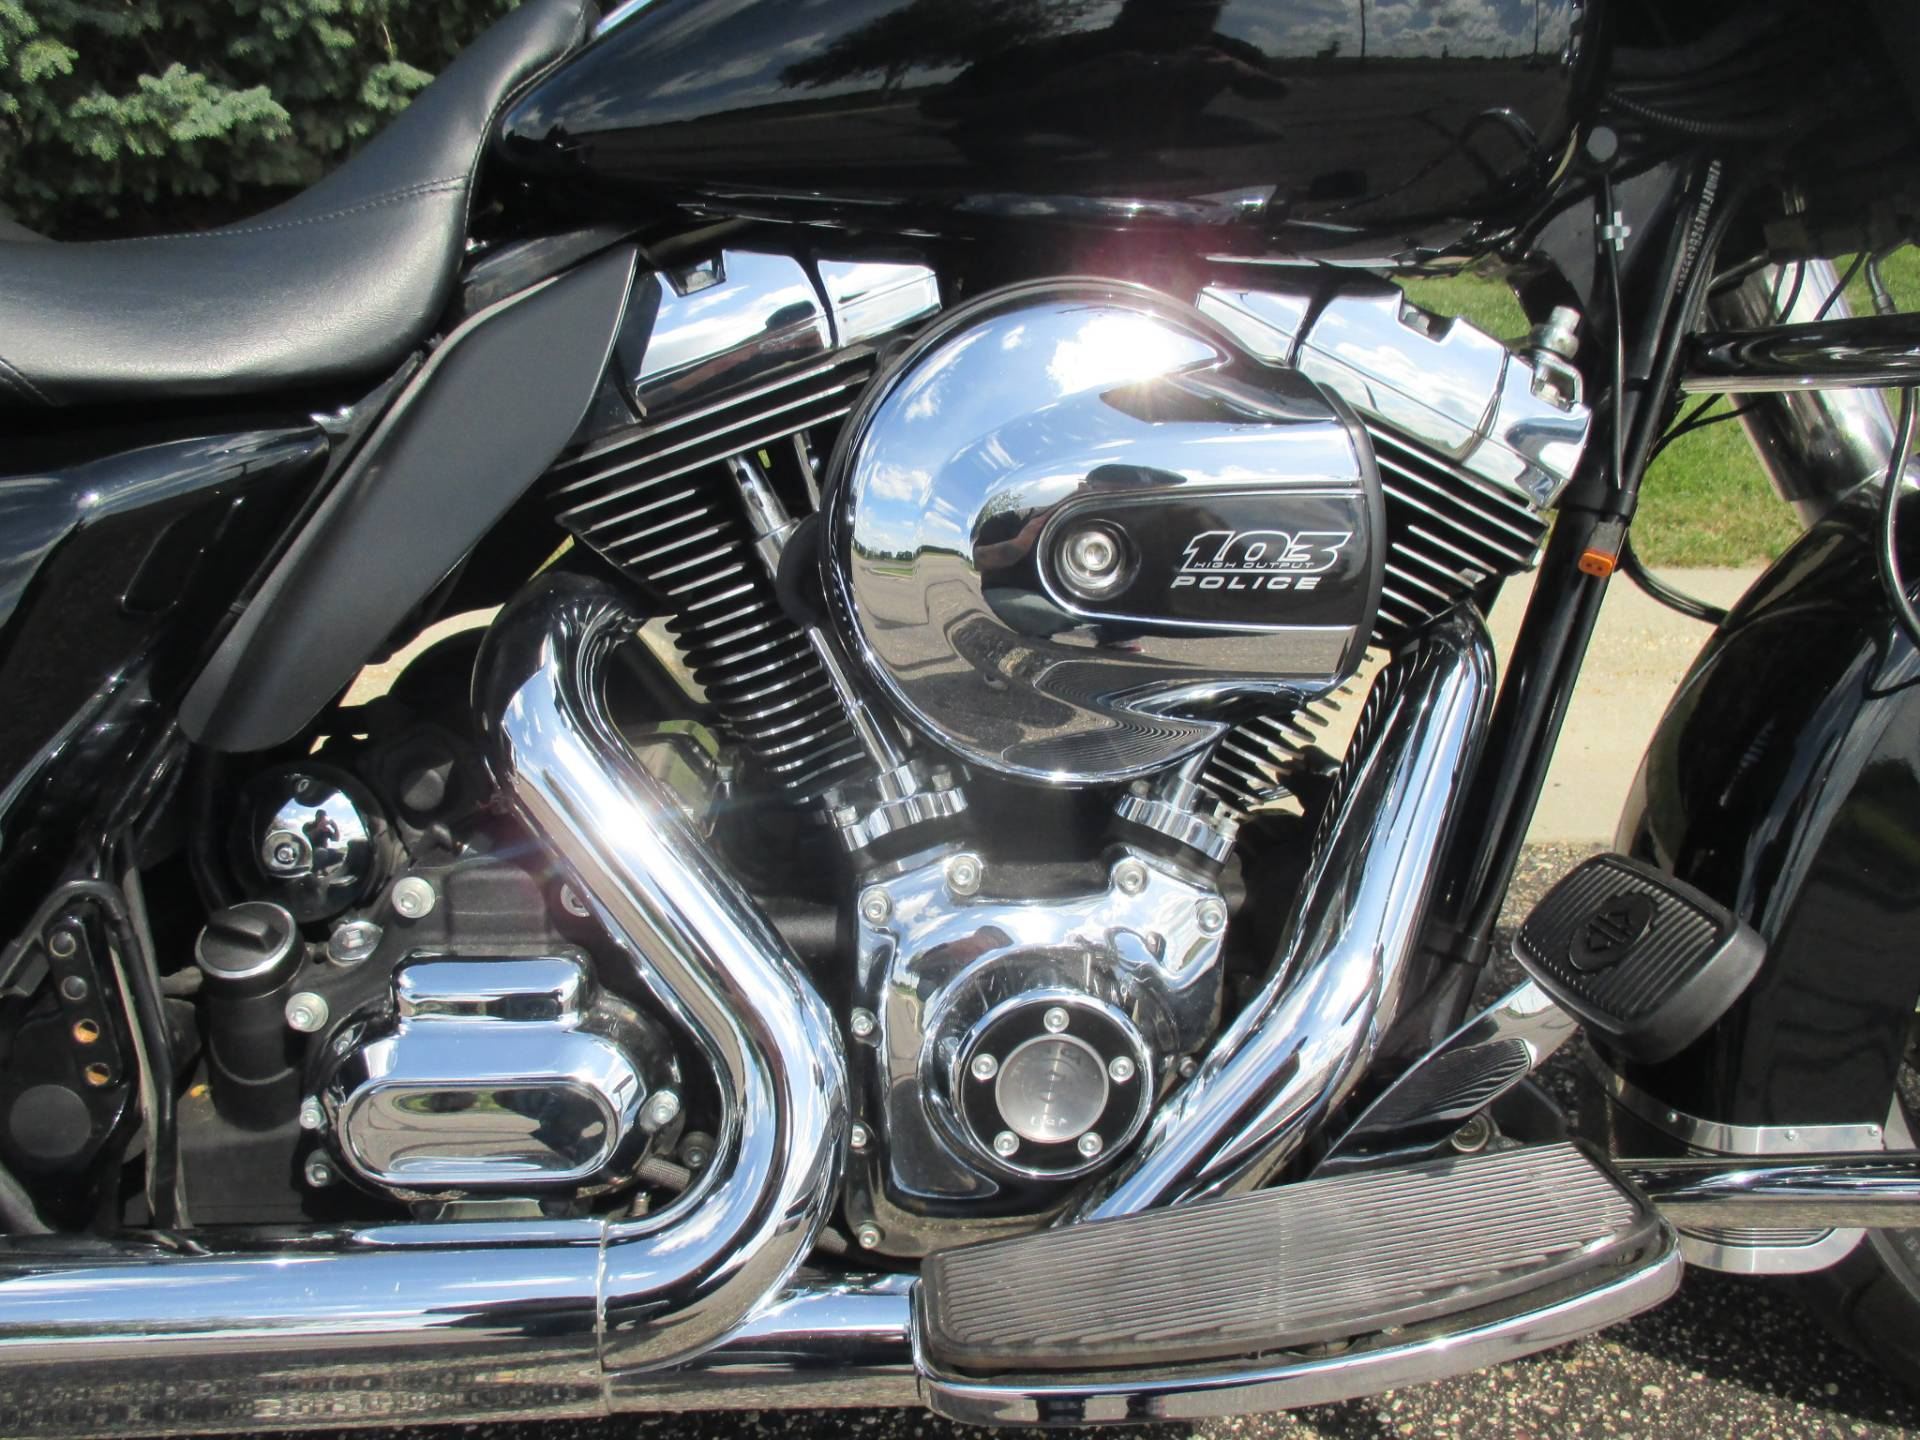 2016 Harley-Davidson FLHTP in Alexandria, Minnesota - Photo 6